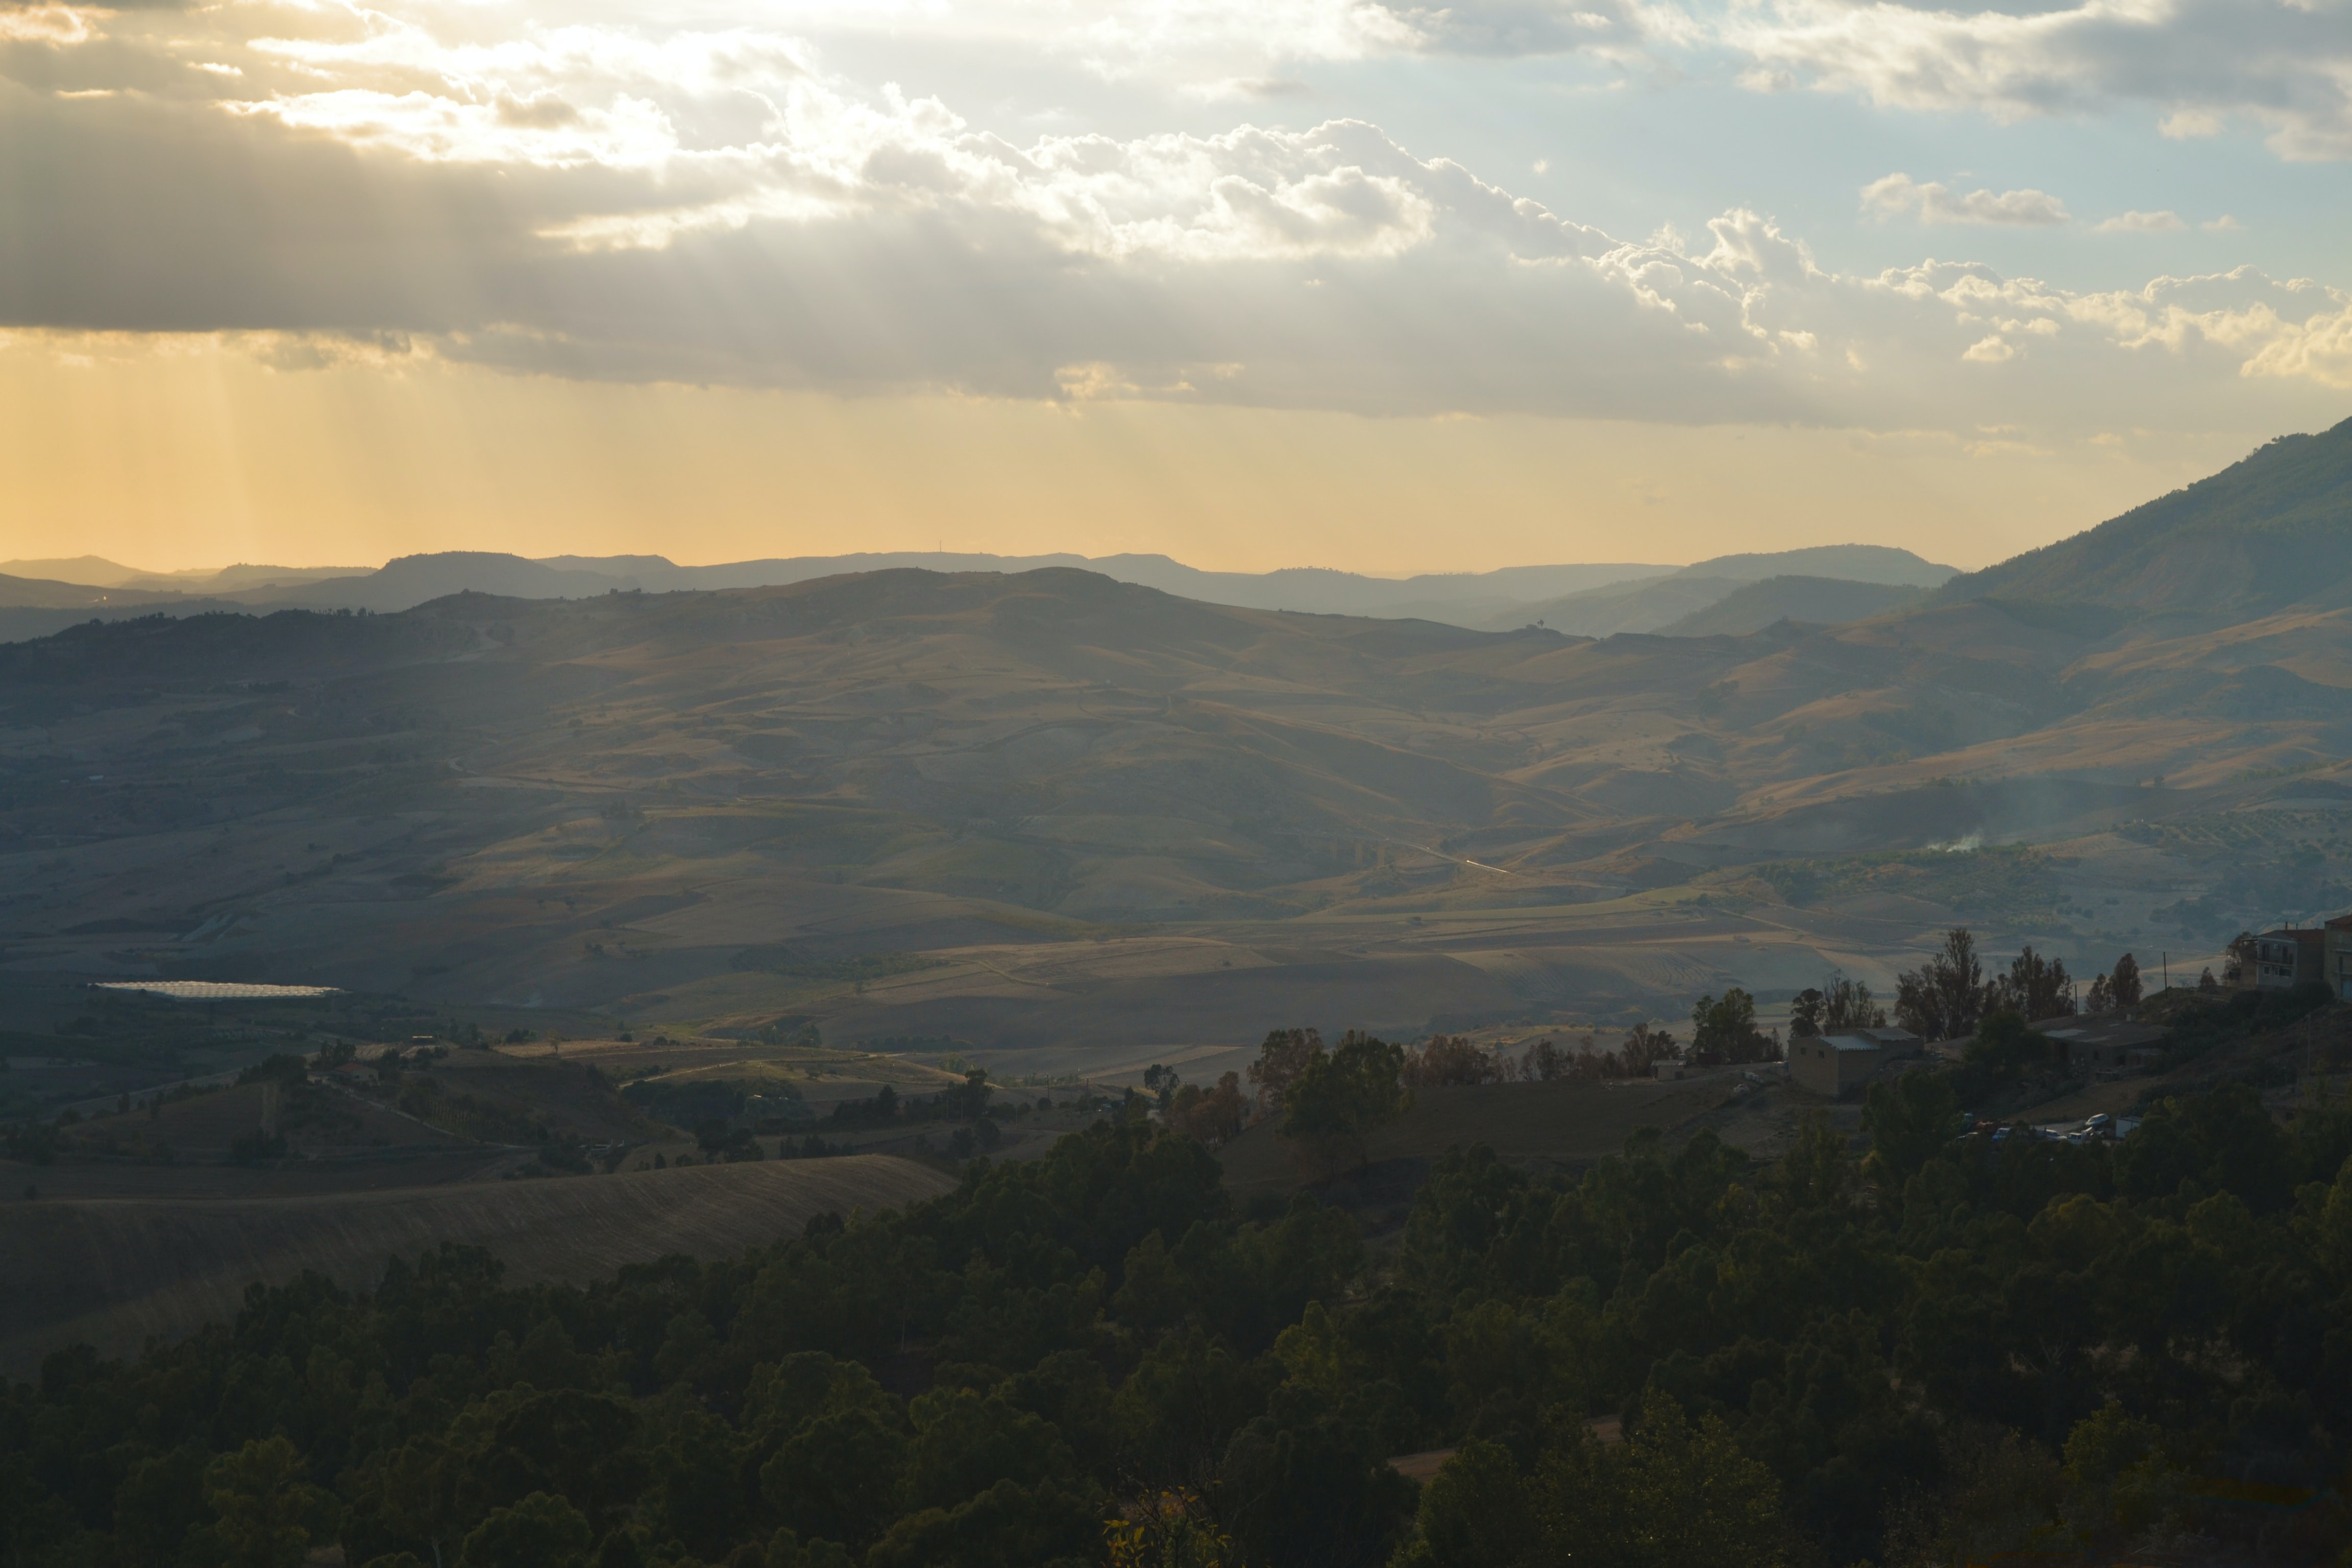 An Italian landscape of mountains and rolling hills during golden hour in Sicily